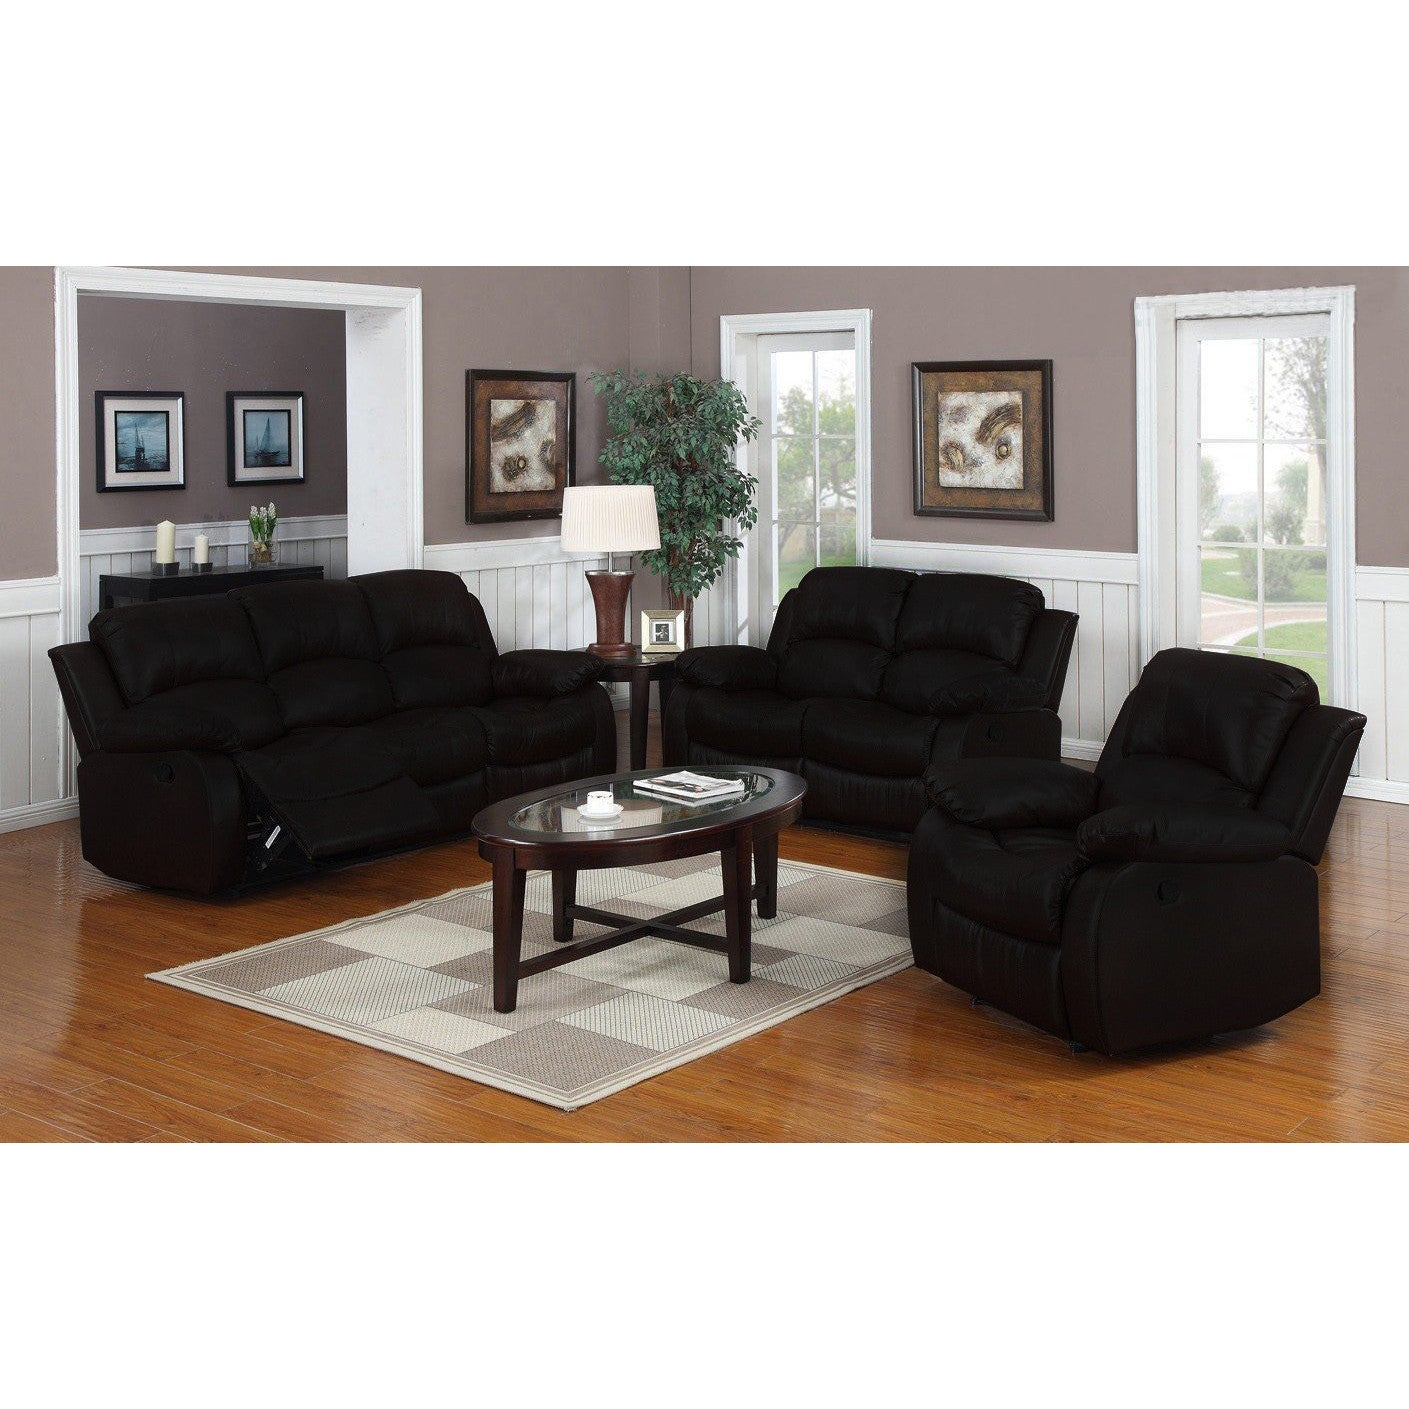 Shop Classic Oversize And Overstuffed Real Leather Sofa, Loveseat, And  Single Chair Recliners   Free Shipping Today   Overstock.com   12179394